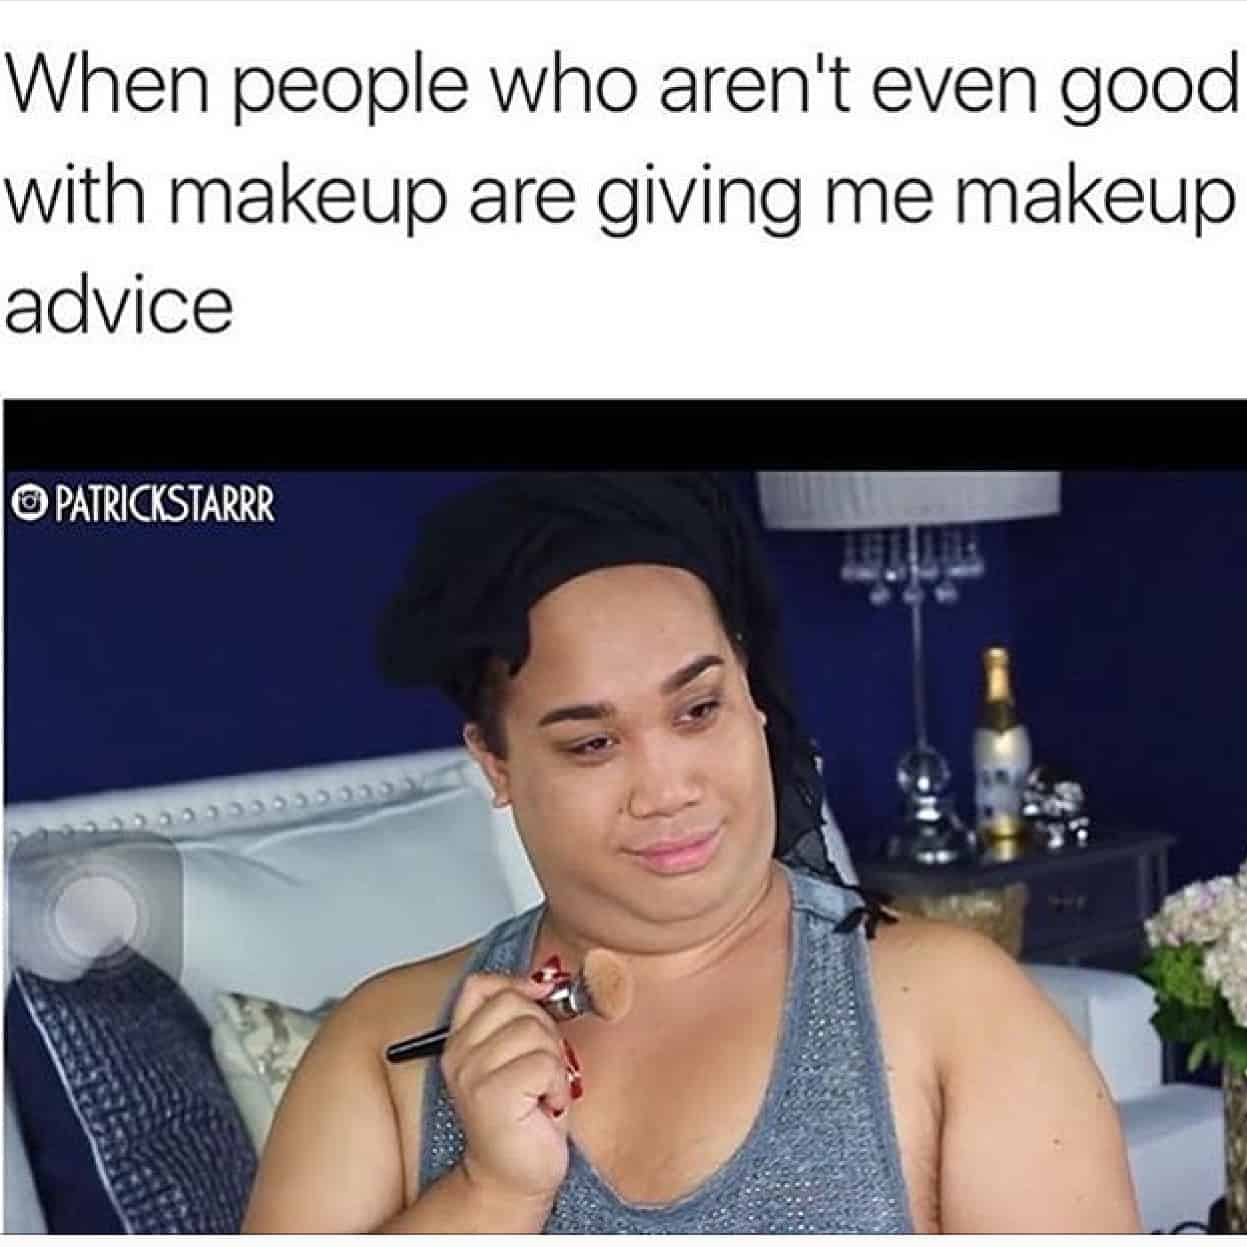 Caked On Makeup Meme